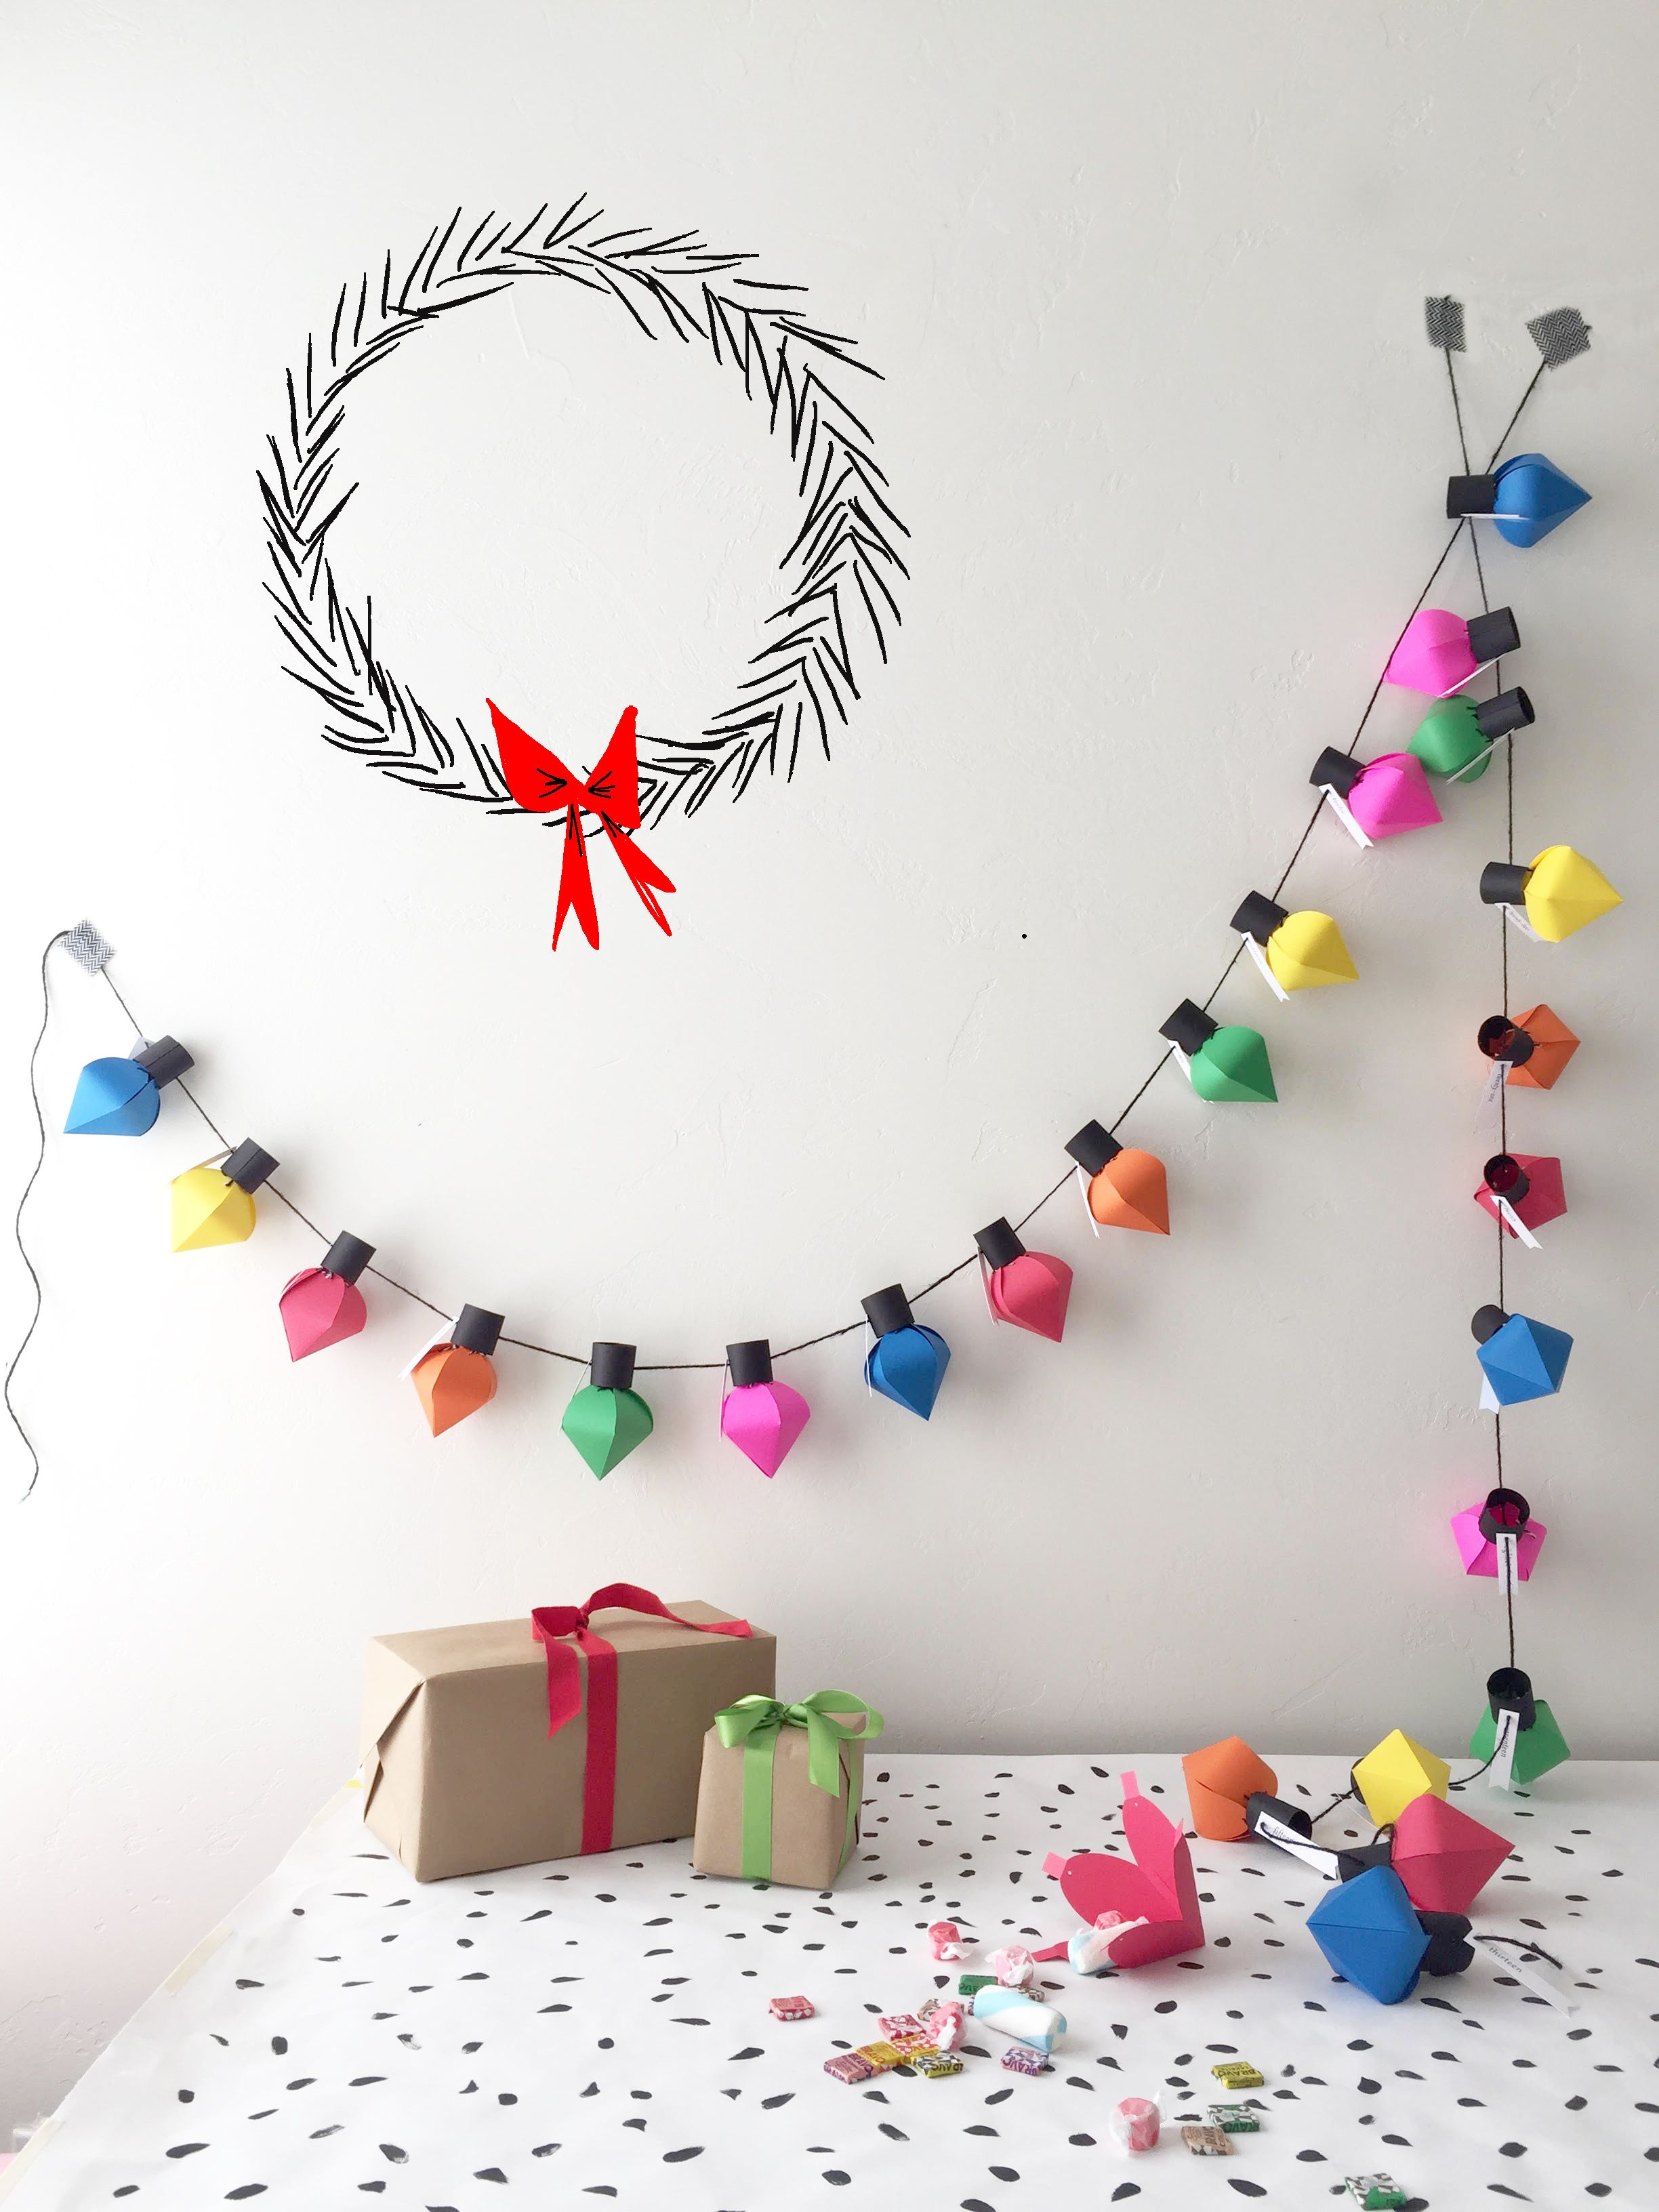 71 Easy Christmas Crafts - Simple DIY Holiday Craft Ideas & Projects